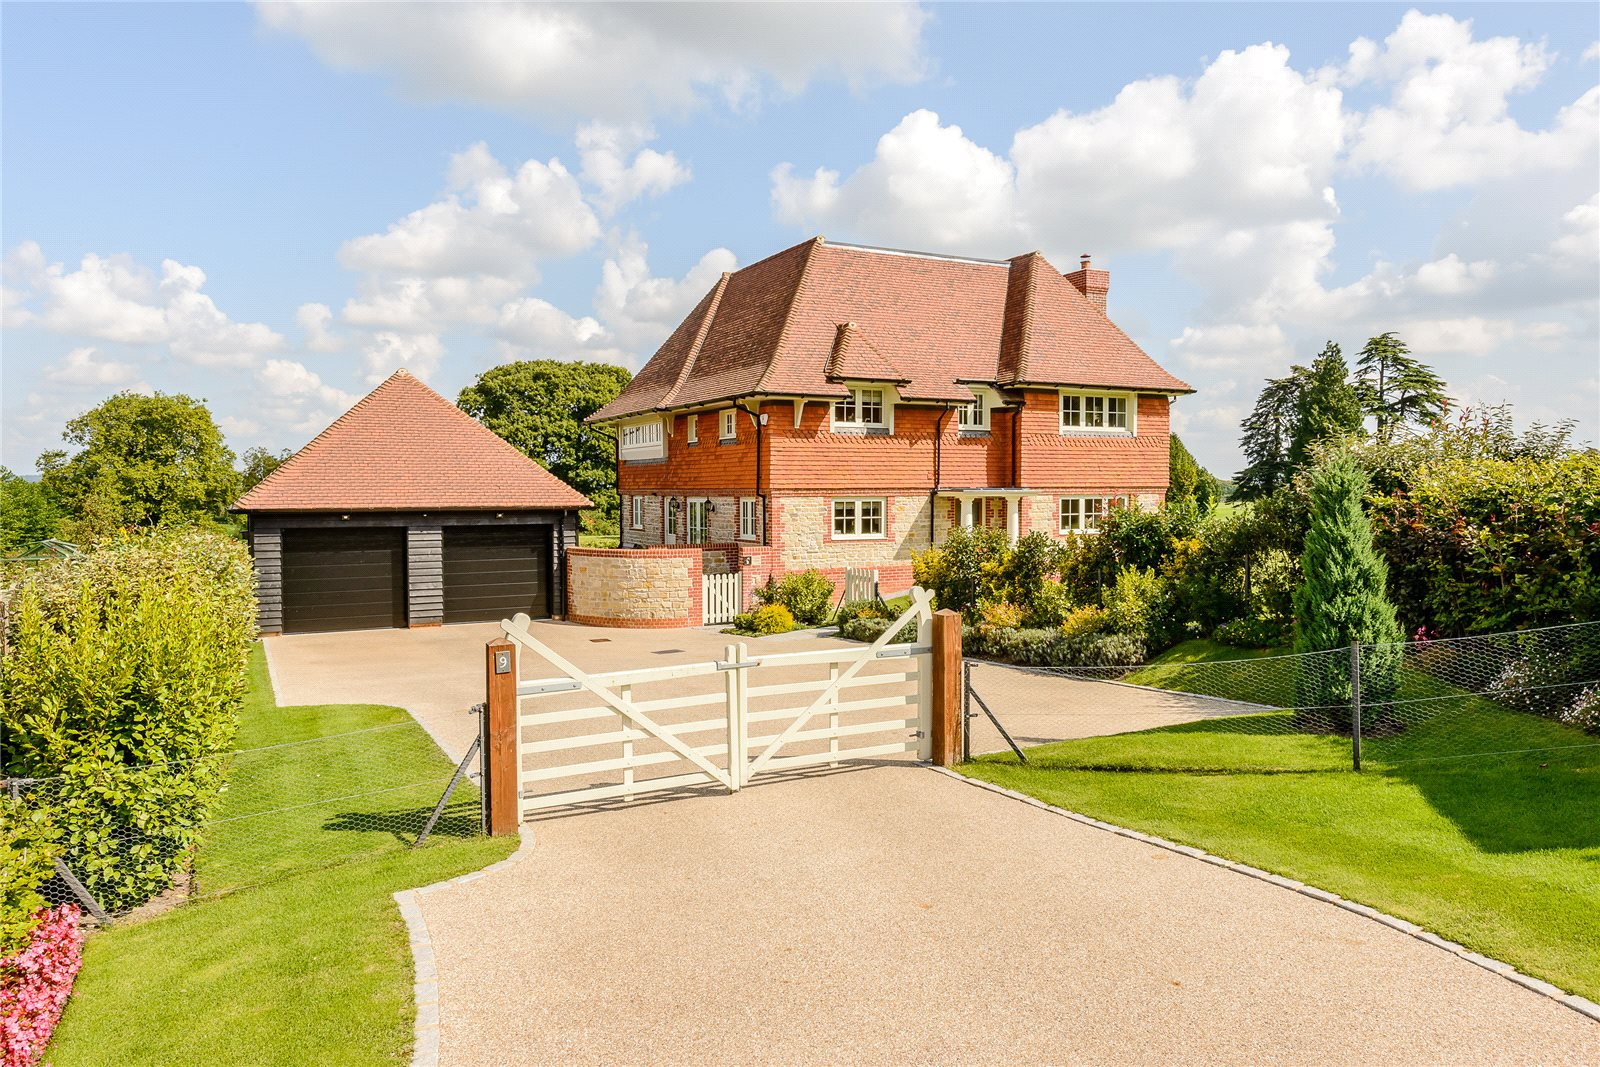 Villa per Vendita alle ore Wallace Square, Lavington Park, Petworth, West Sussex, GU28 Petworth, Inghilterra